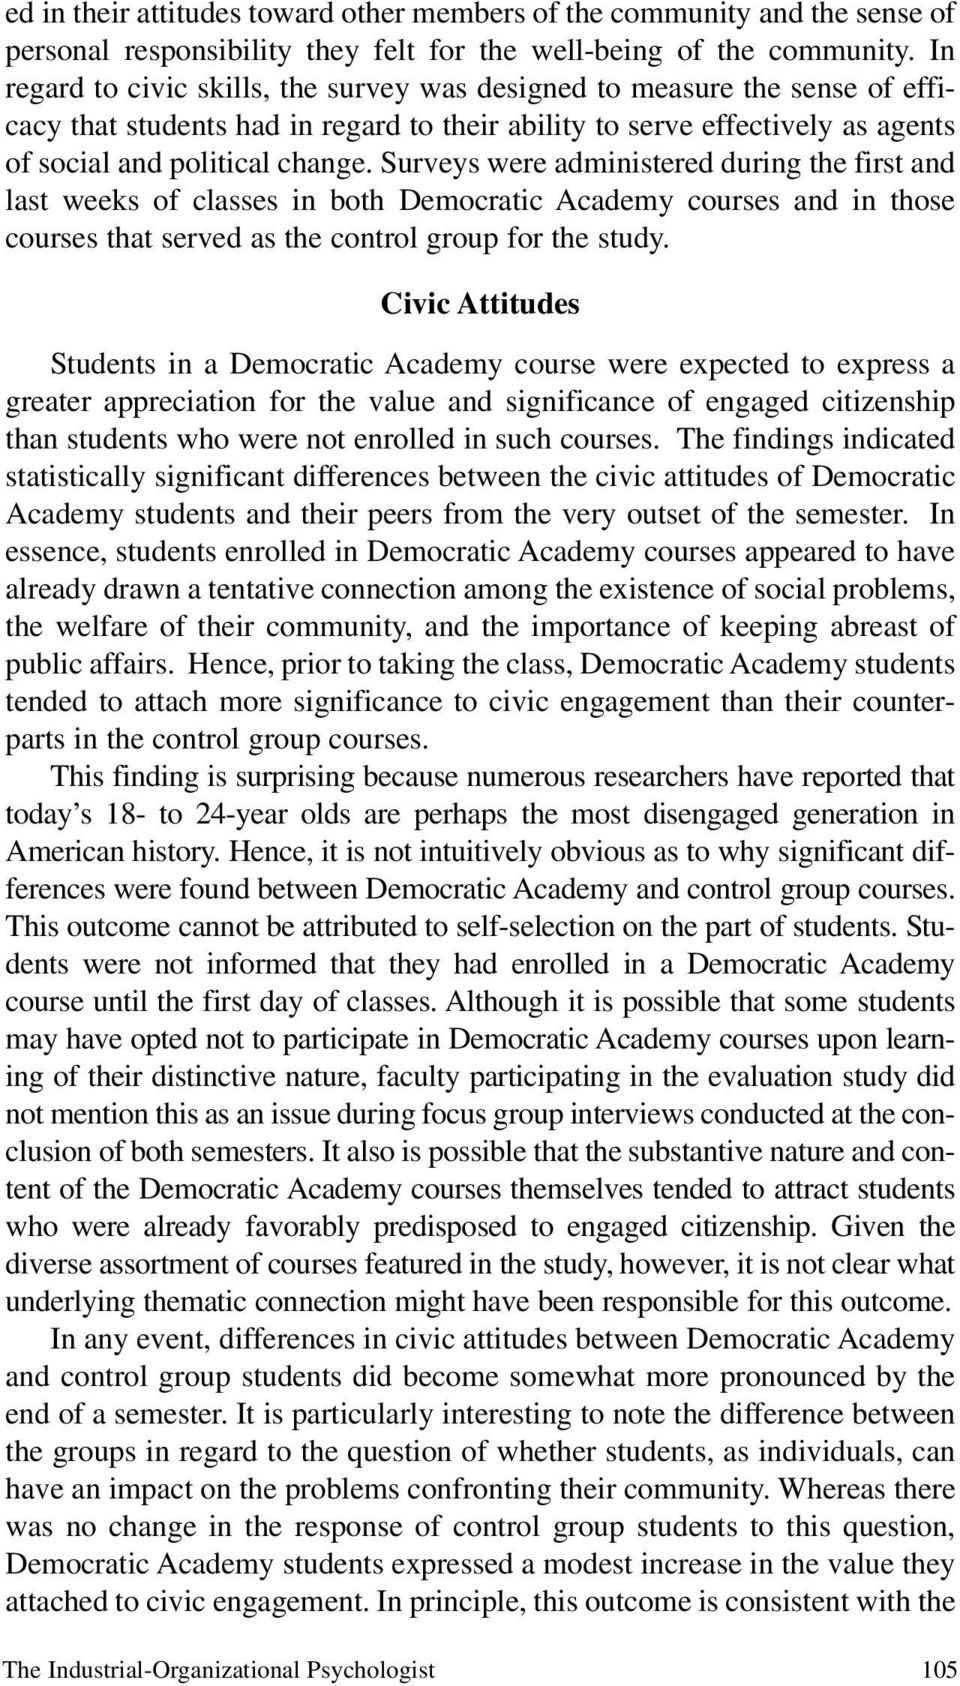 Surveys were administered during the first and last weeks of classes in both Democratic Academy courses and in those courses that served as the control group for the study.